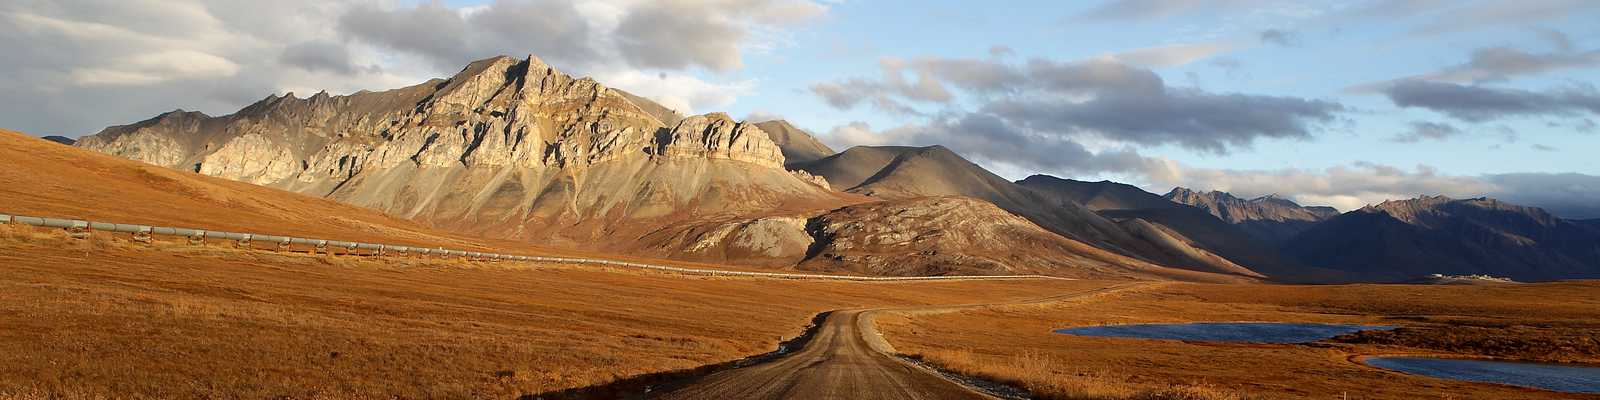 Der Dalton Highway in der Abendsonne